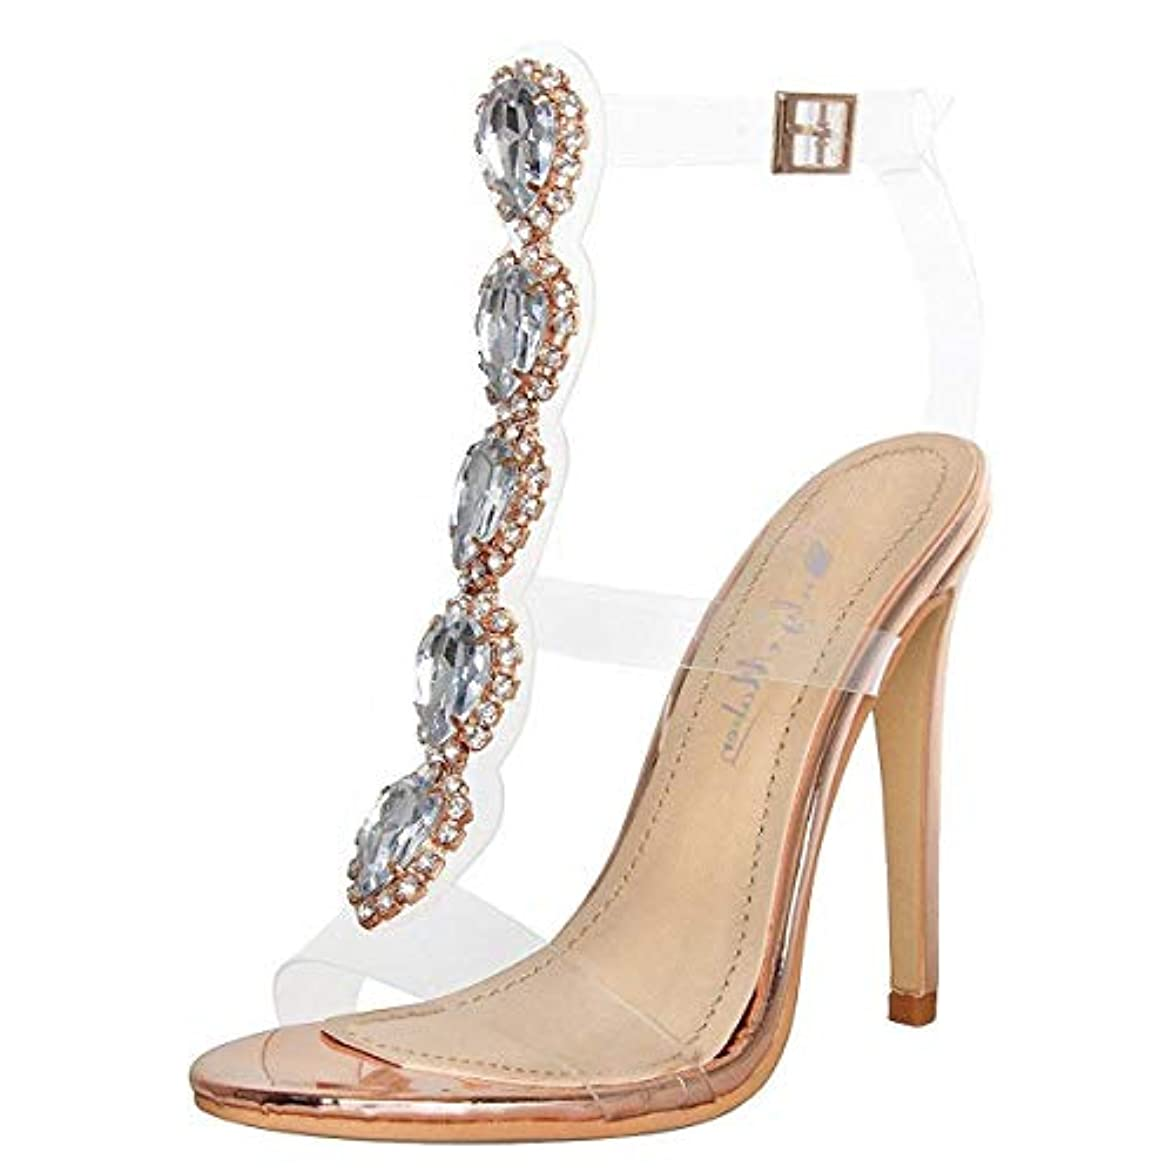 Onlymaker Womens Ankle Strap Buckle Cutout Gem Clear Stiletto High Heels Gladiator Transparent Strip Sandals with Rhinestones nts843641151779